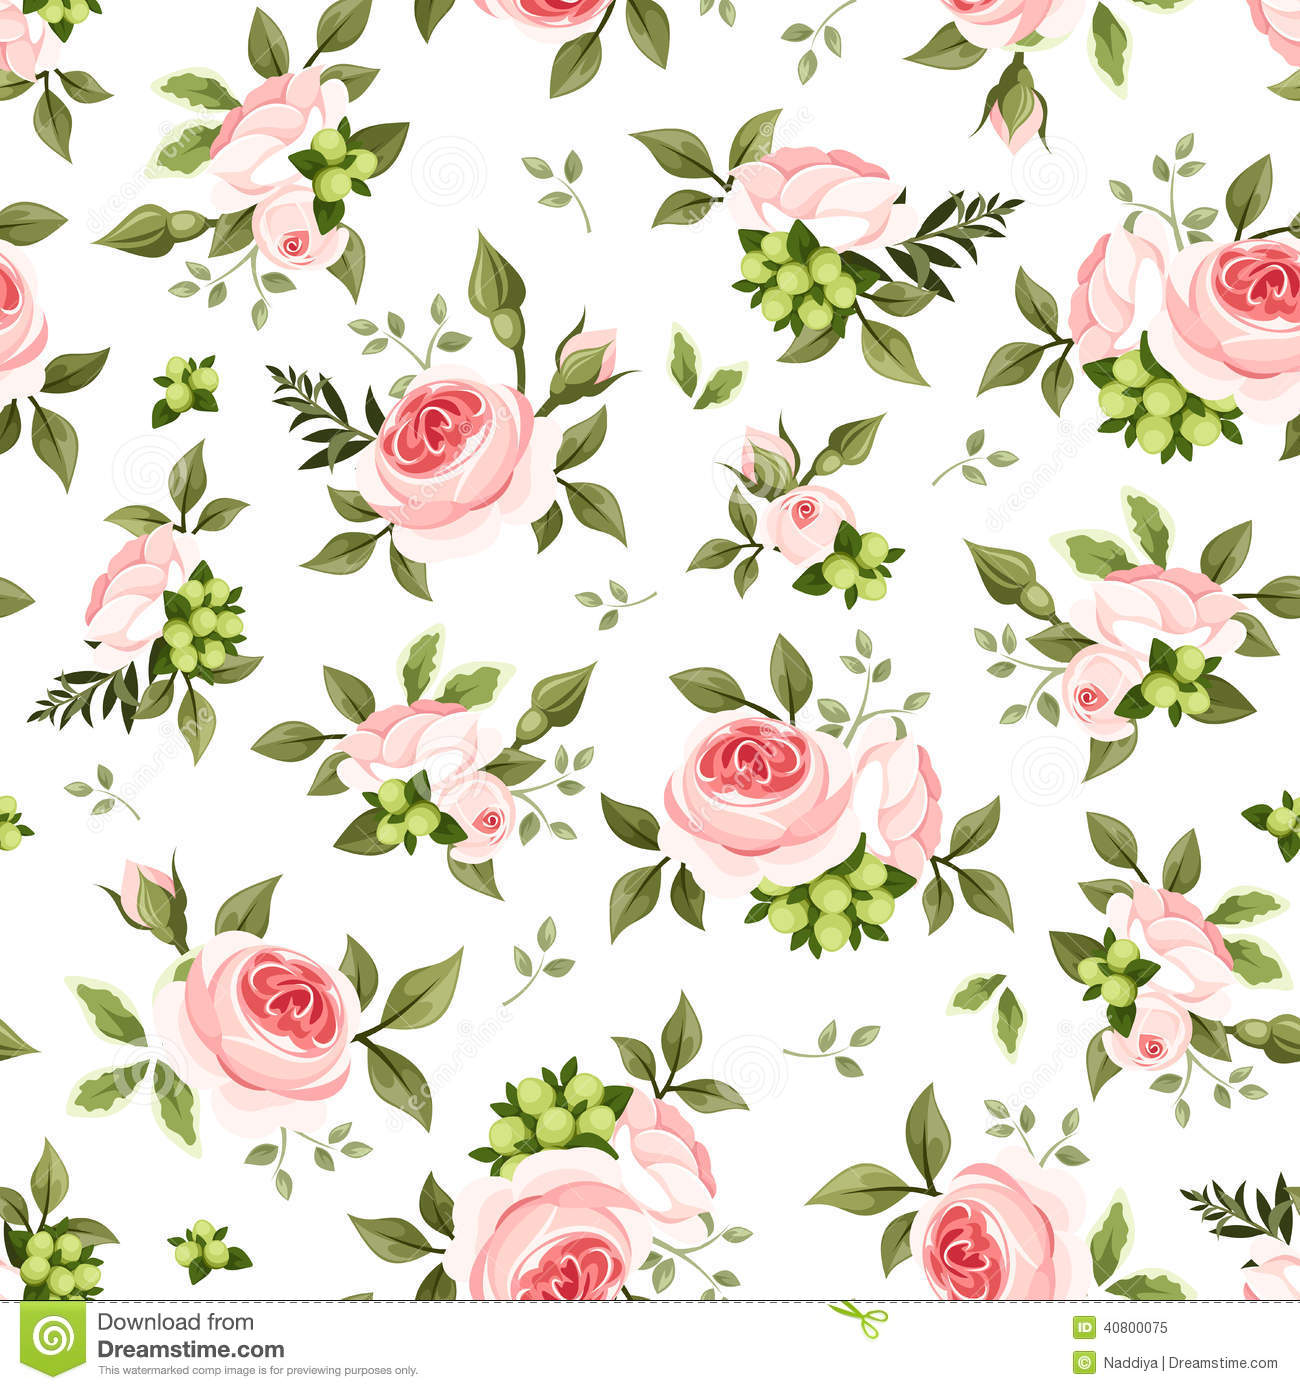 Seamless Pattern With Pink Roses And Green Leaves. Vector